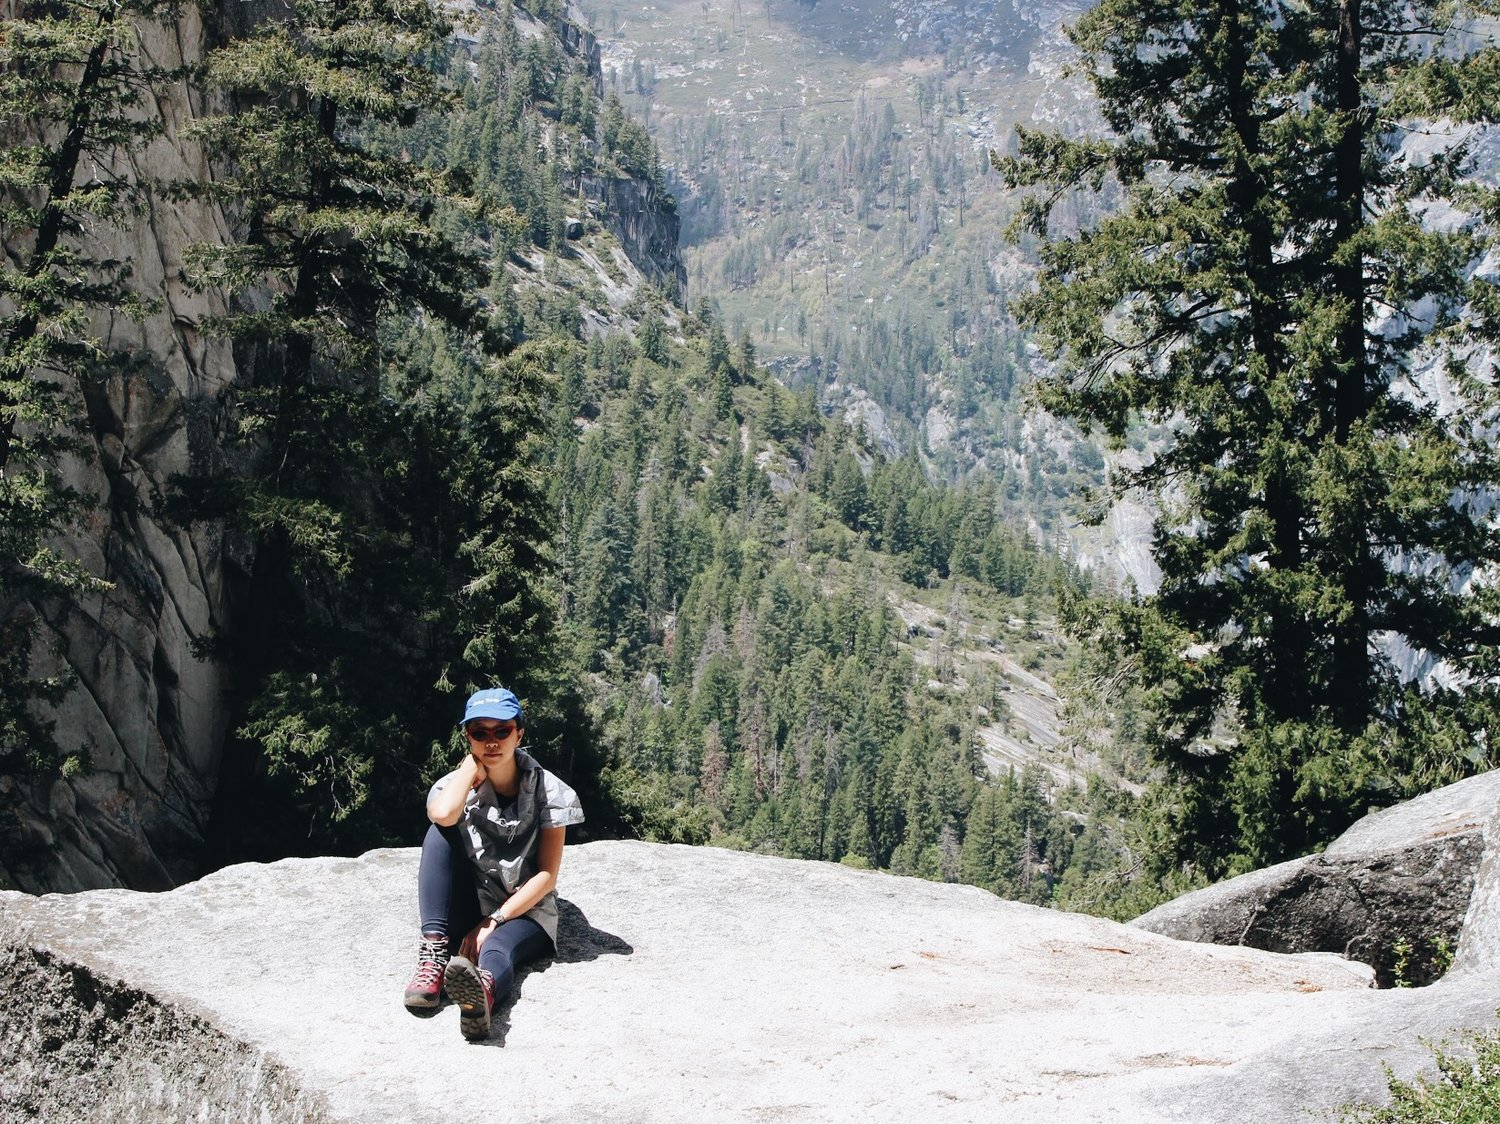 vsco edits: yosemite — SYSTEMATIC BEGINNINGS